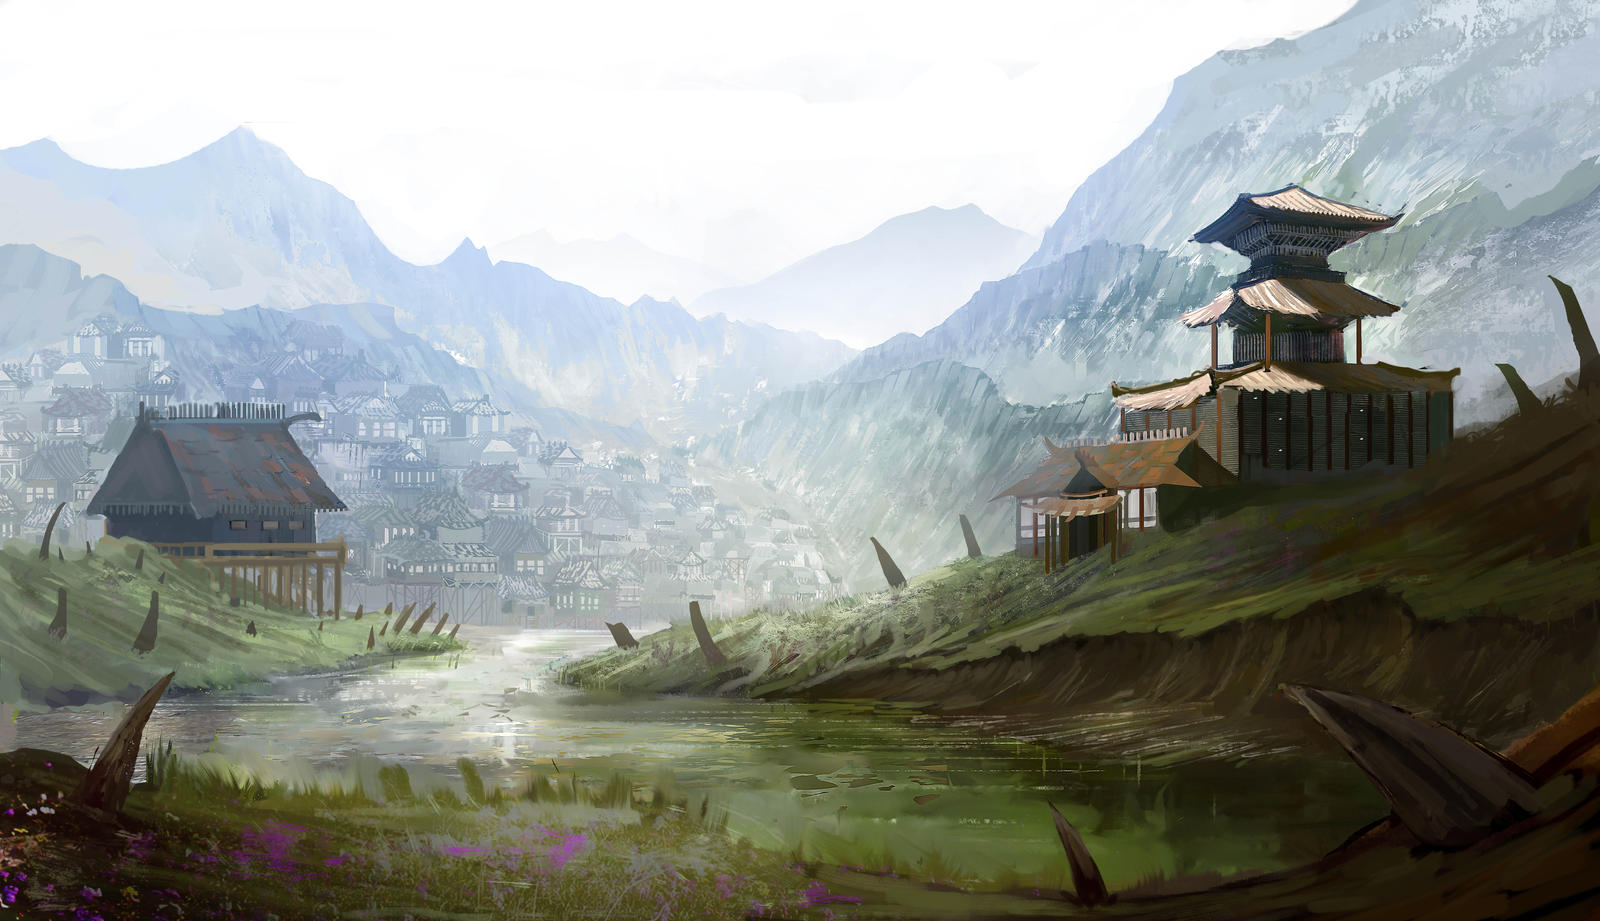 japan village by B-Zuleta